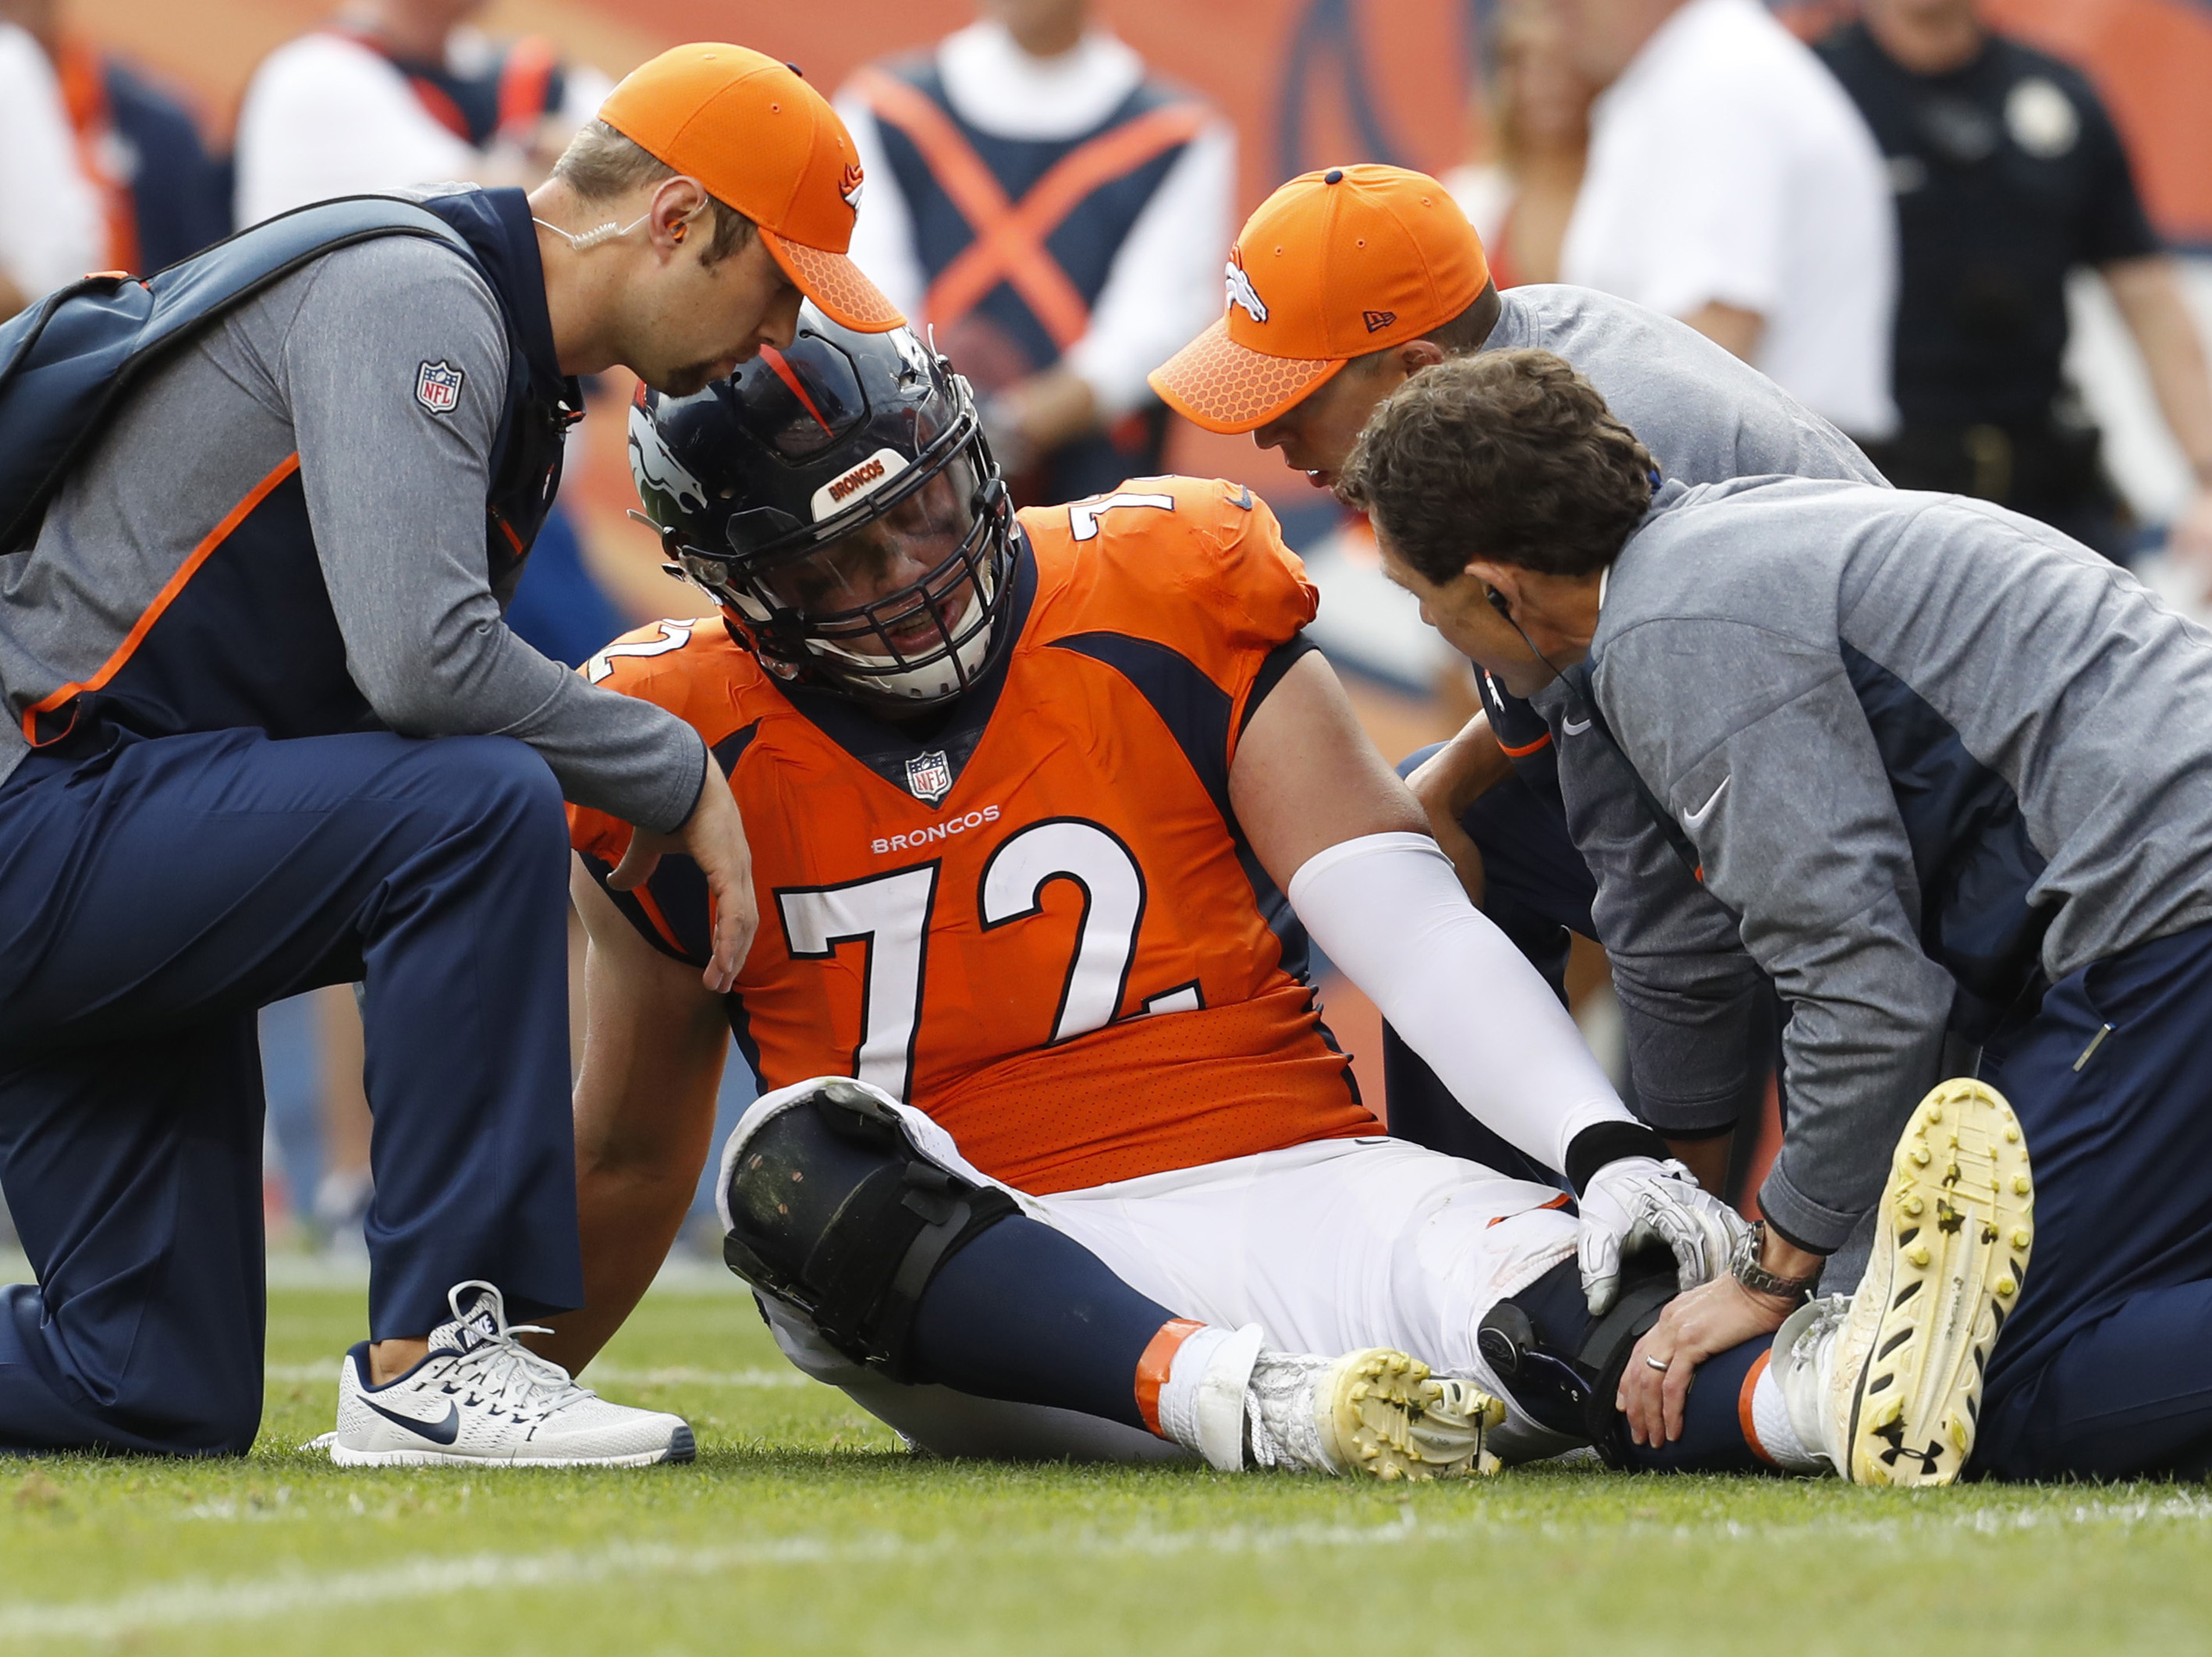 Broncos' OL Garett Bolles returns to practice 4 days after leg injury